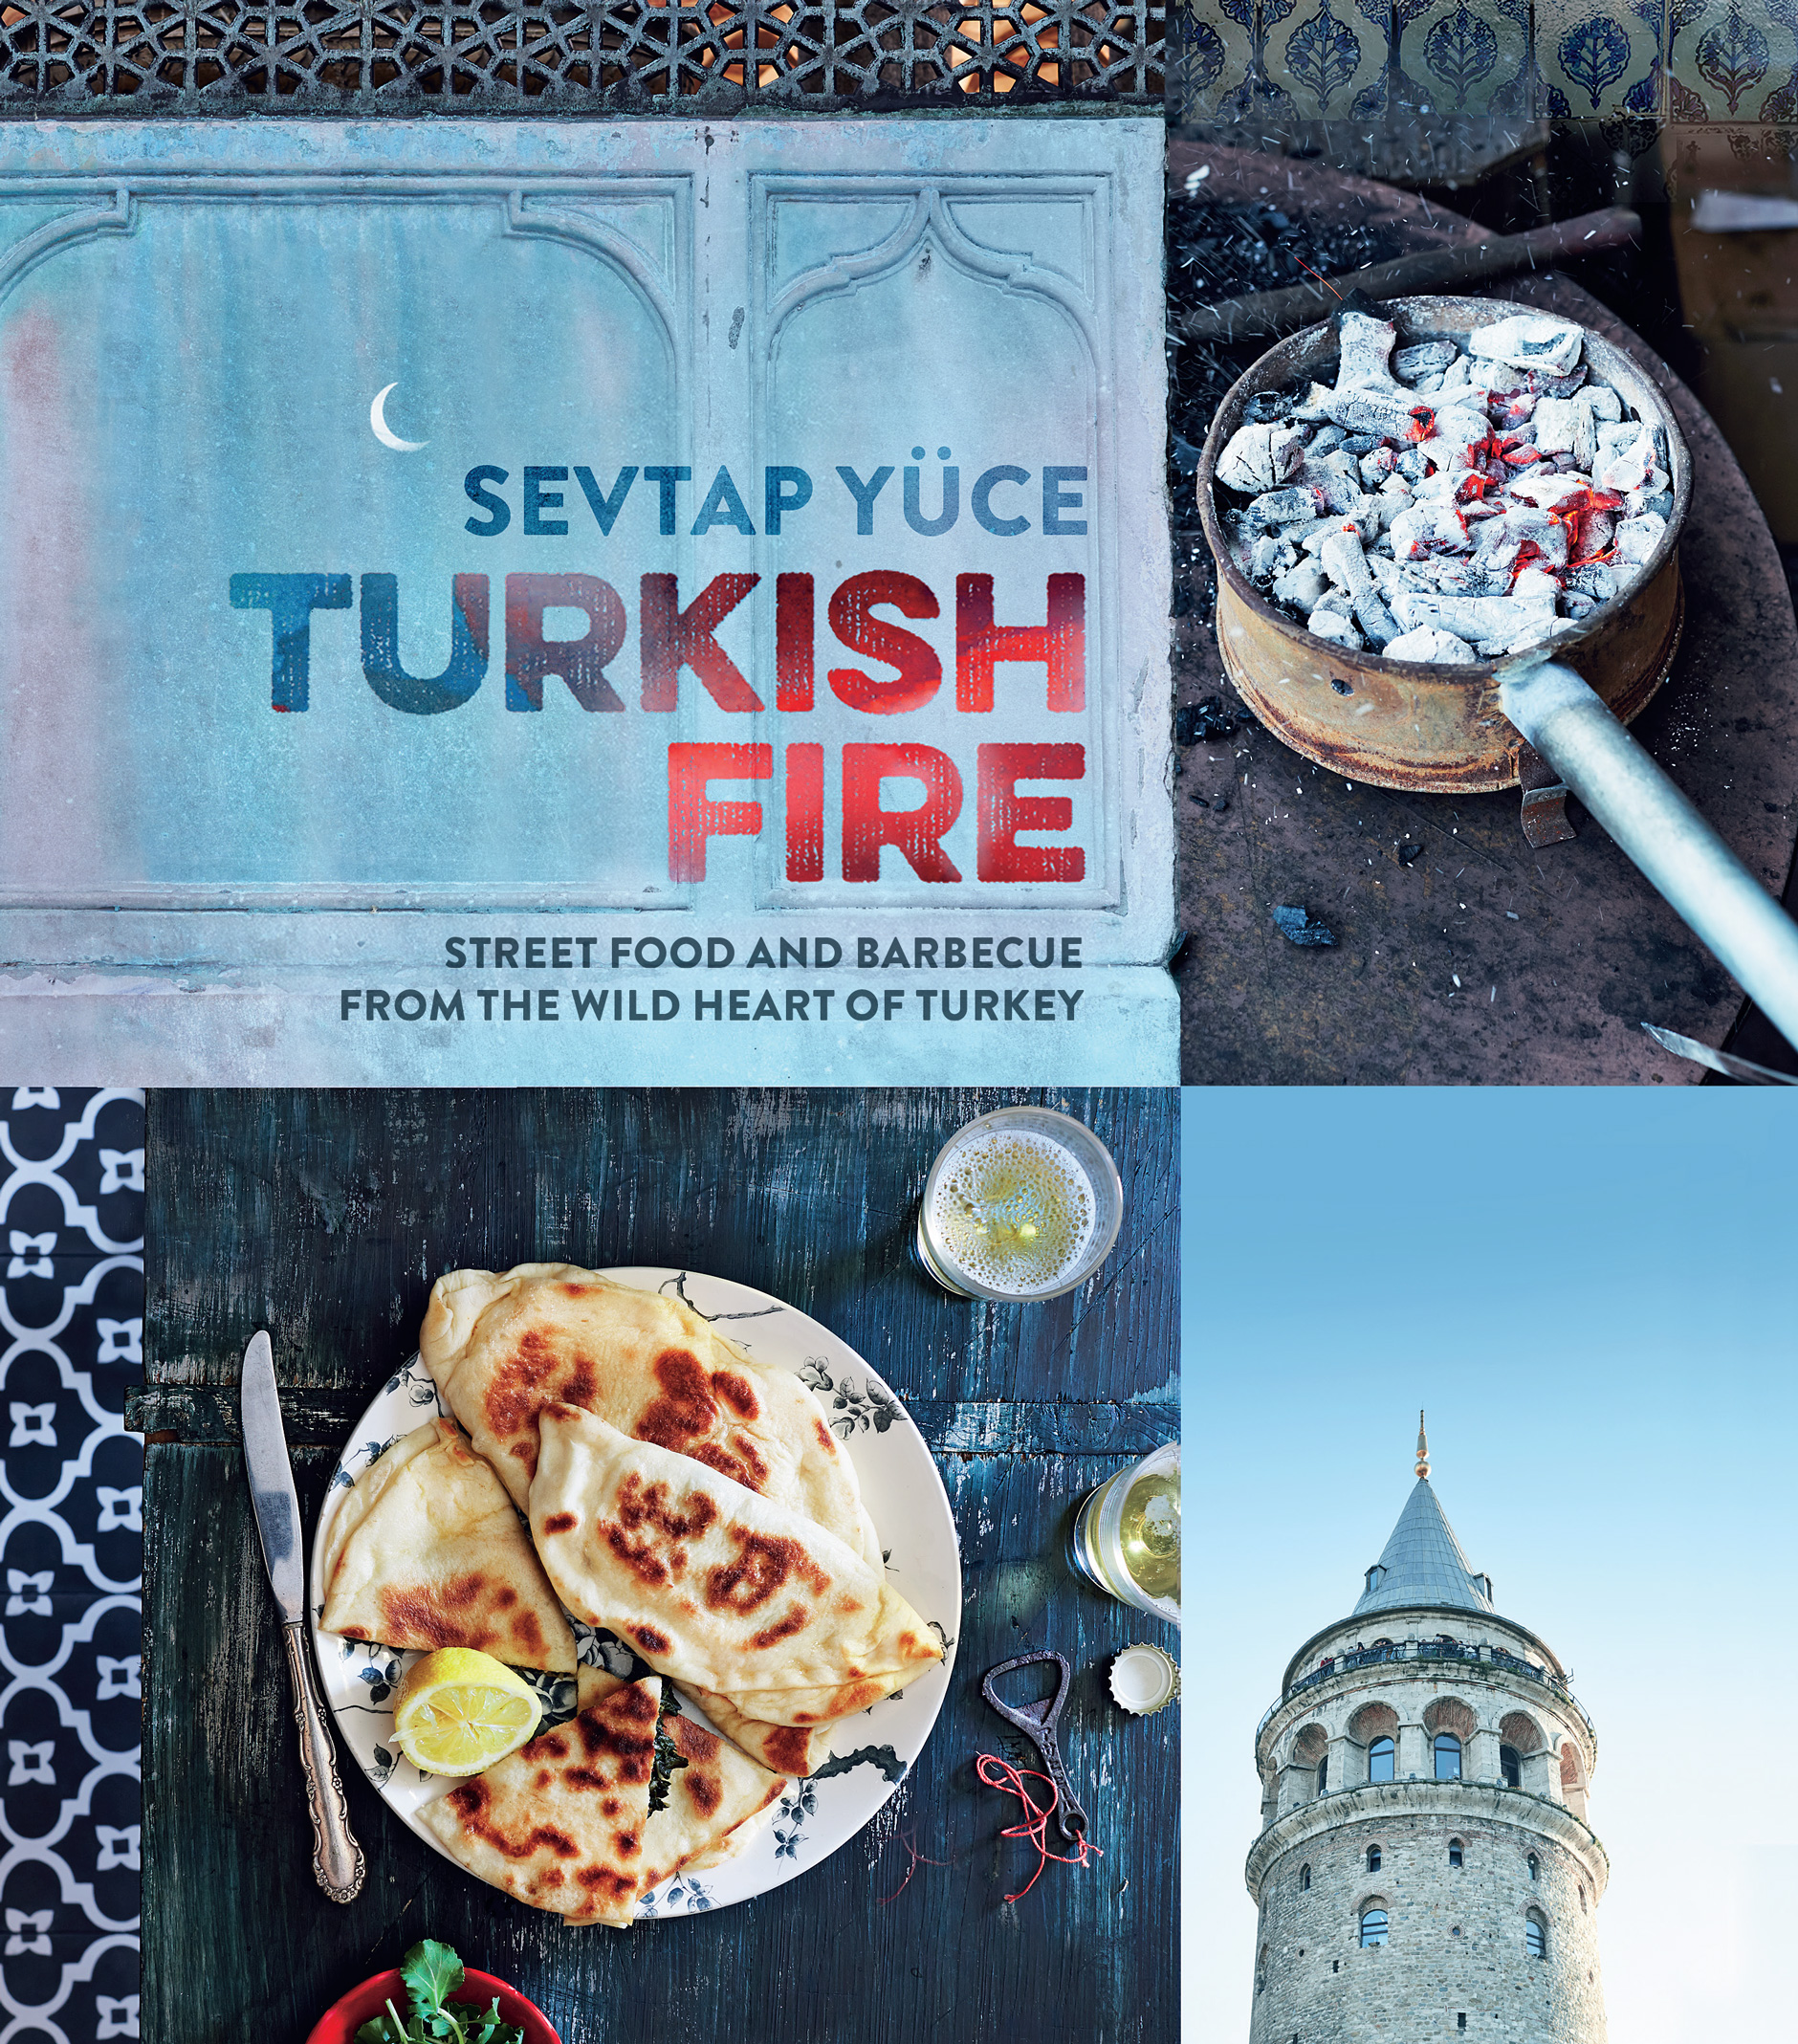 Turkish Fire